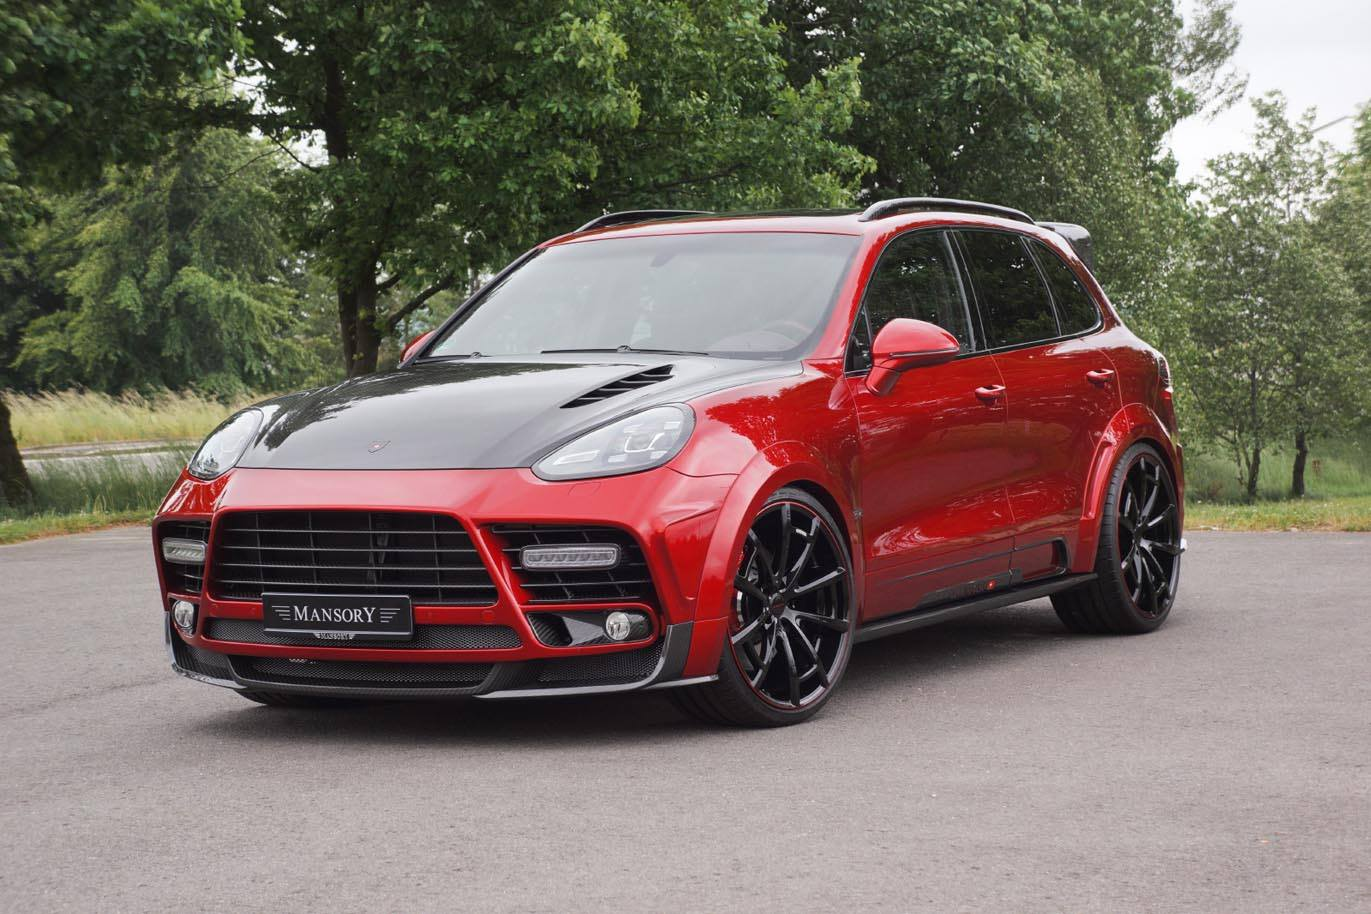 Mansory 2016 Porsche Cayenne Turbo Is A Carbon And Red Swiss Army Knife Autoevolution